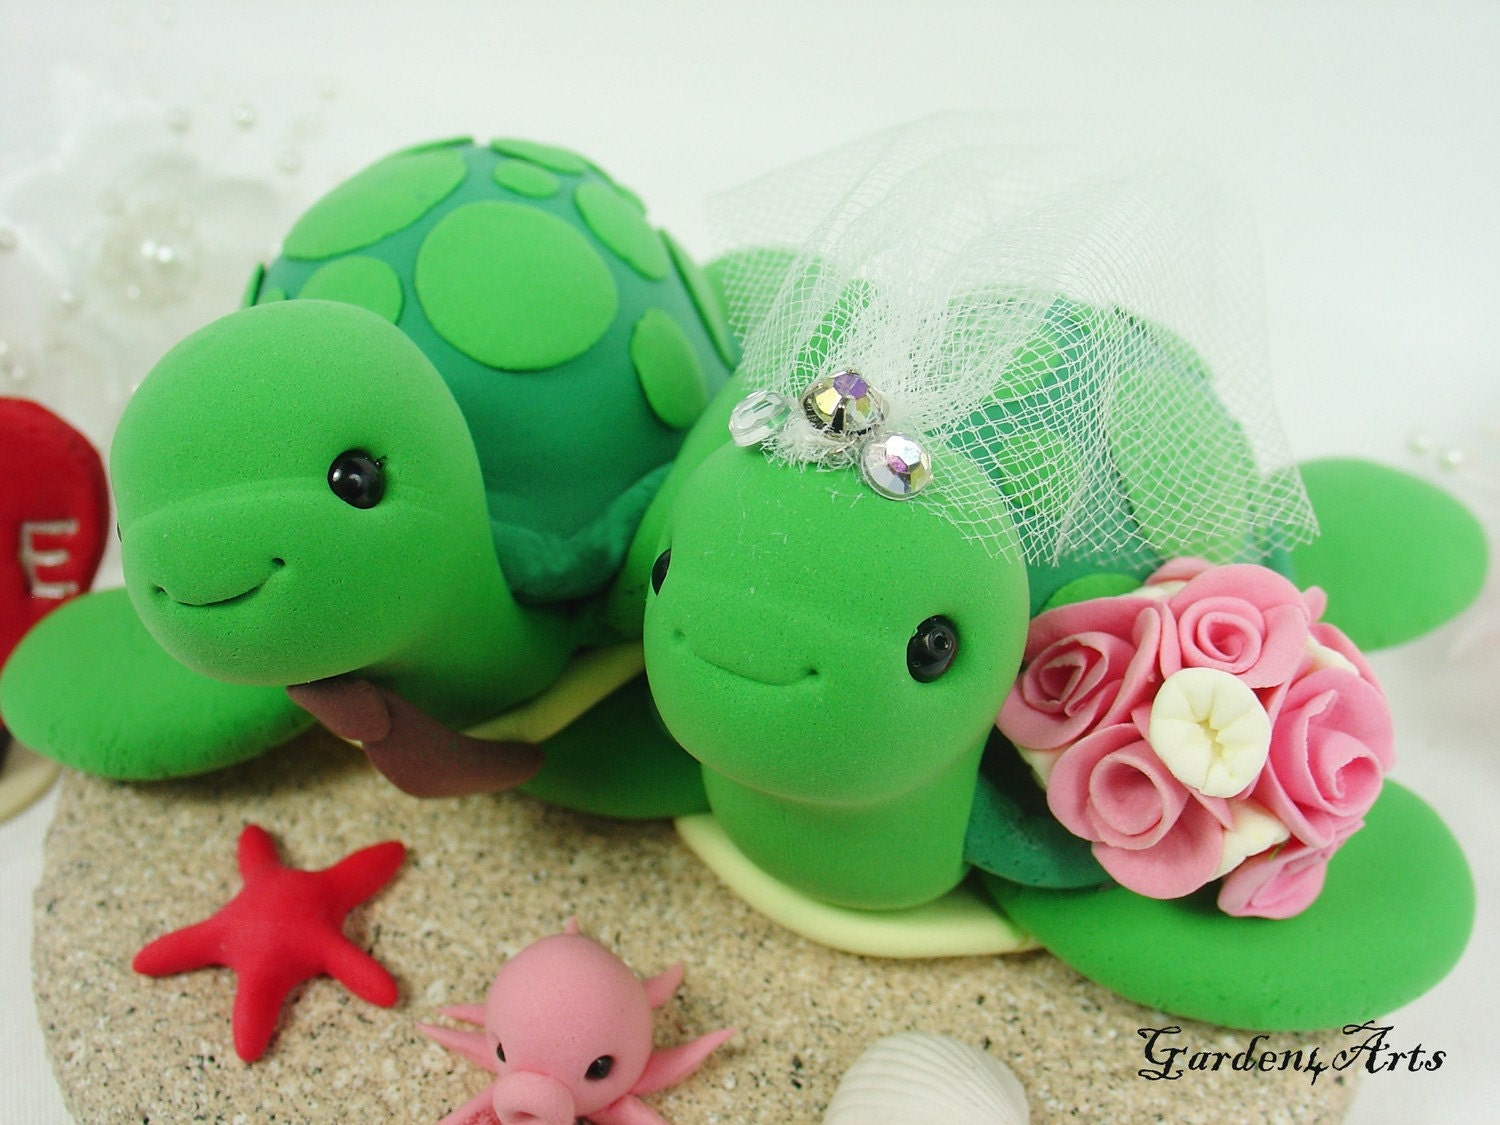 turtle wedding cake topper green sea turtle wedding cake topper with sand by garden4arts 21319